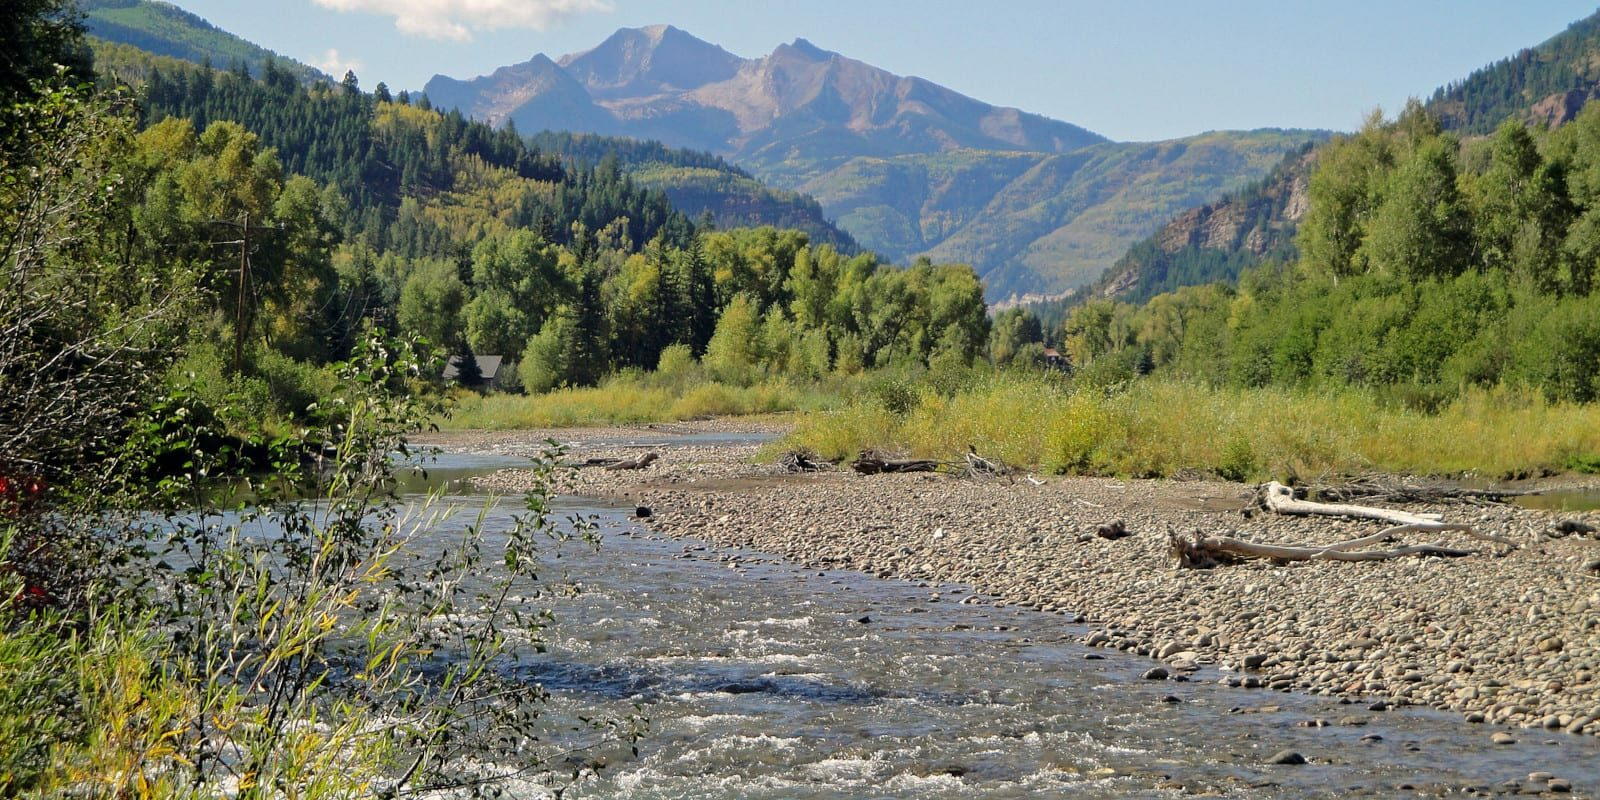 Image of the Crystal River flowing through mountains in Colorado